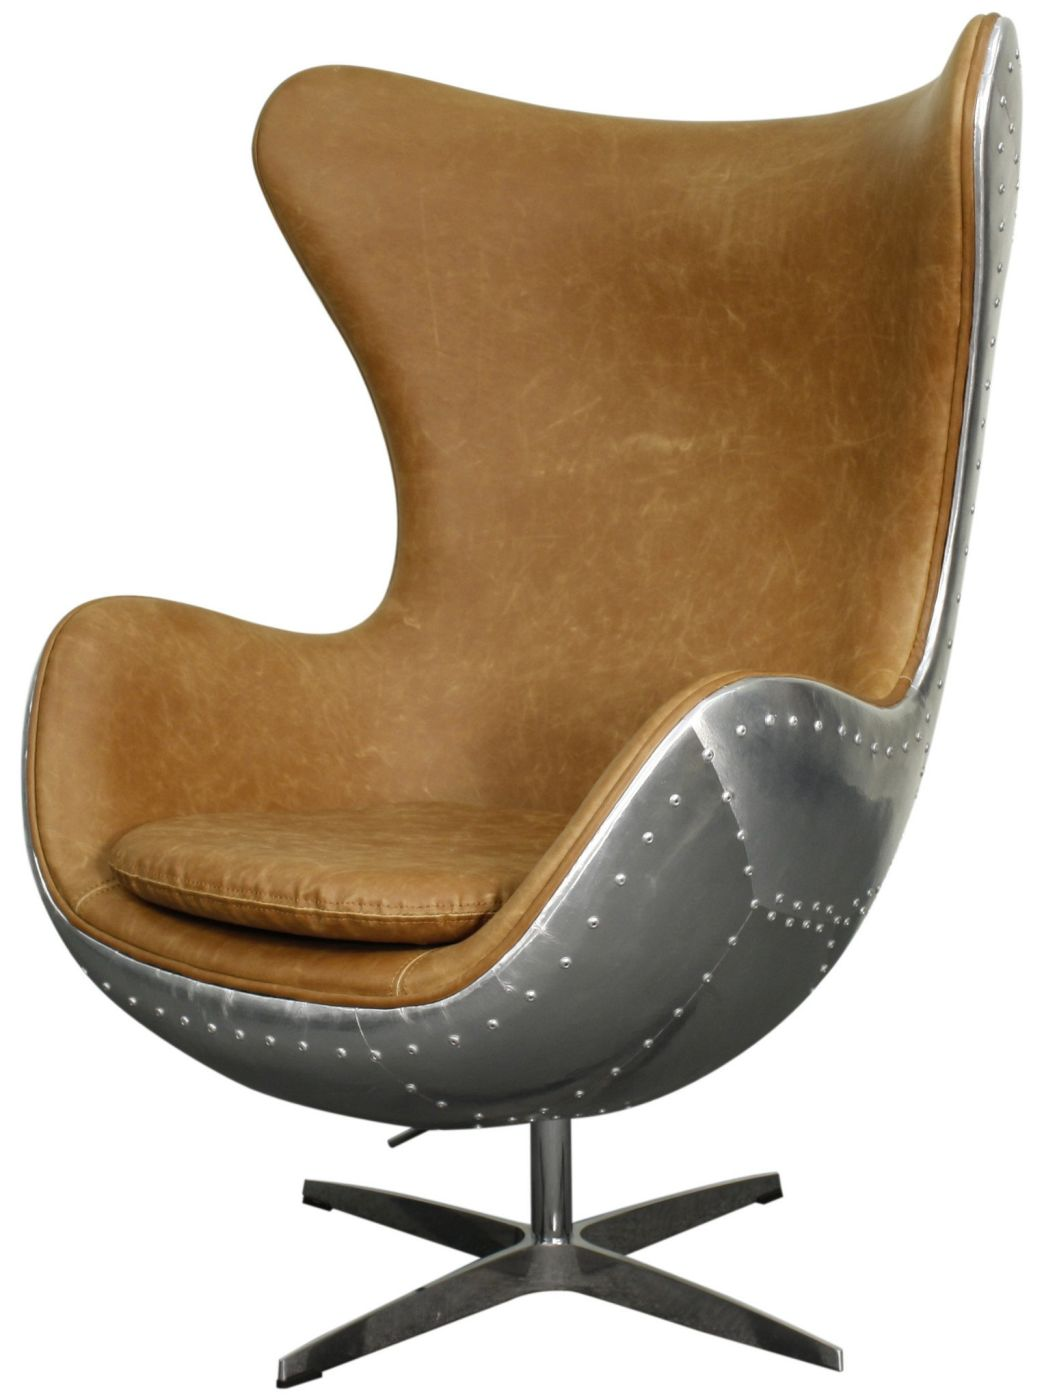 Clearance Accent Chairs At Contemporary Furniture Warehouse | Accent Chairs,  Sale